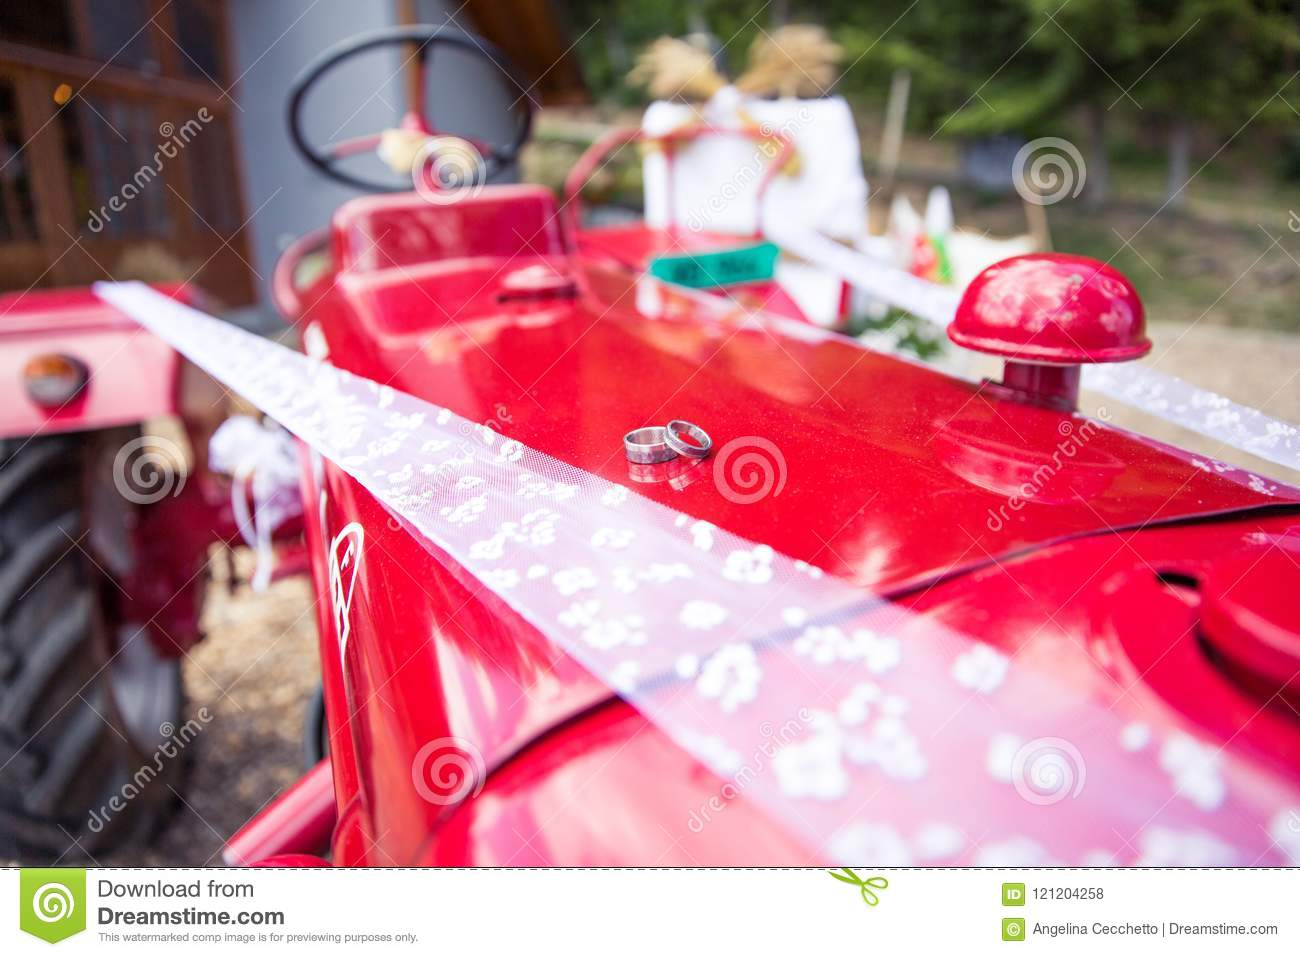 Wedding Rings On A Red Tractor In Rustic Wedding Decoration Stock ...